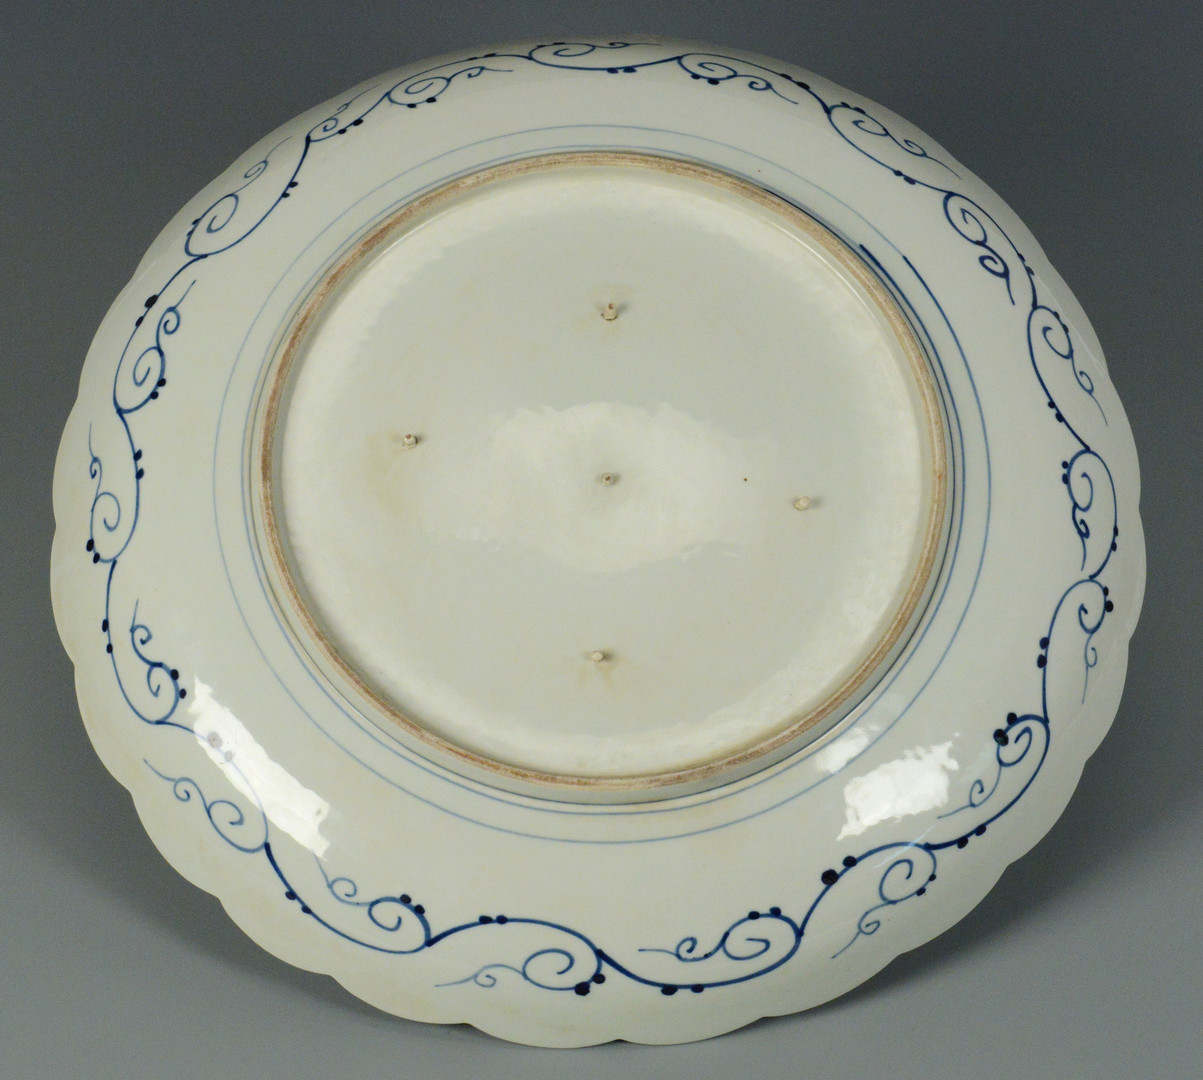 Lot 747: Japanese Imari Porcelain Charger